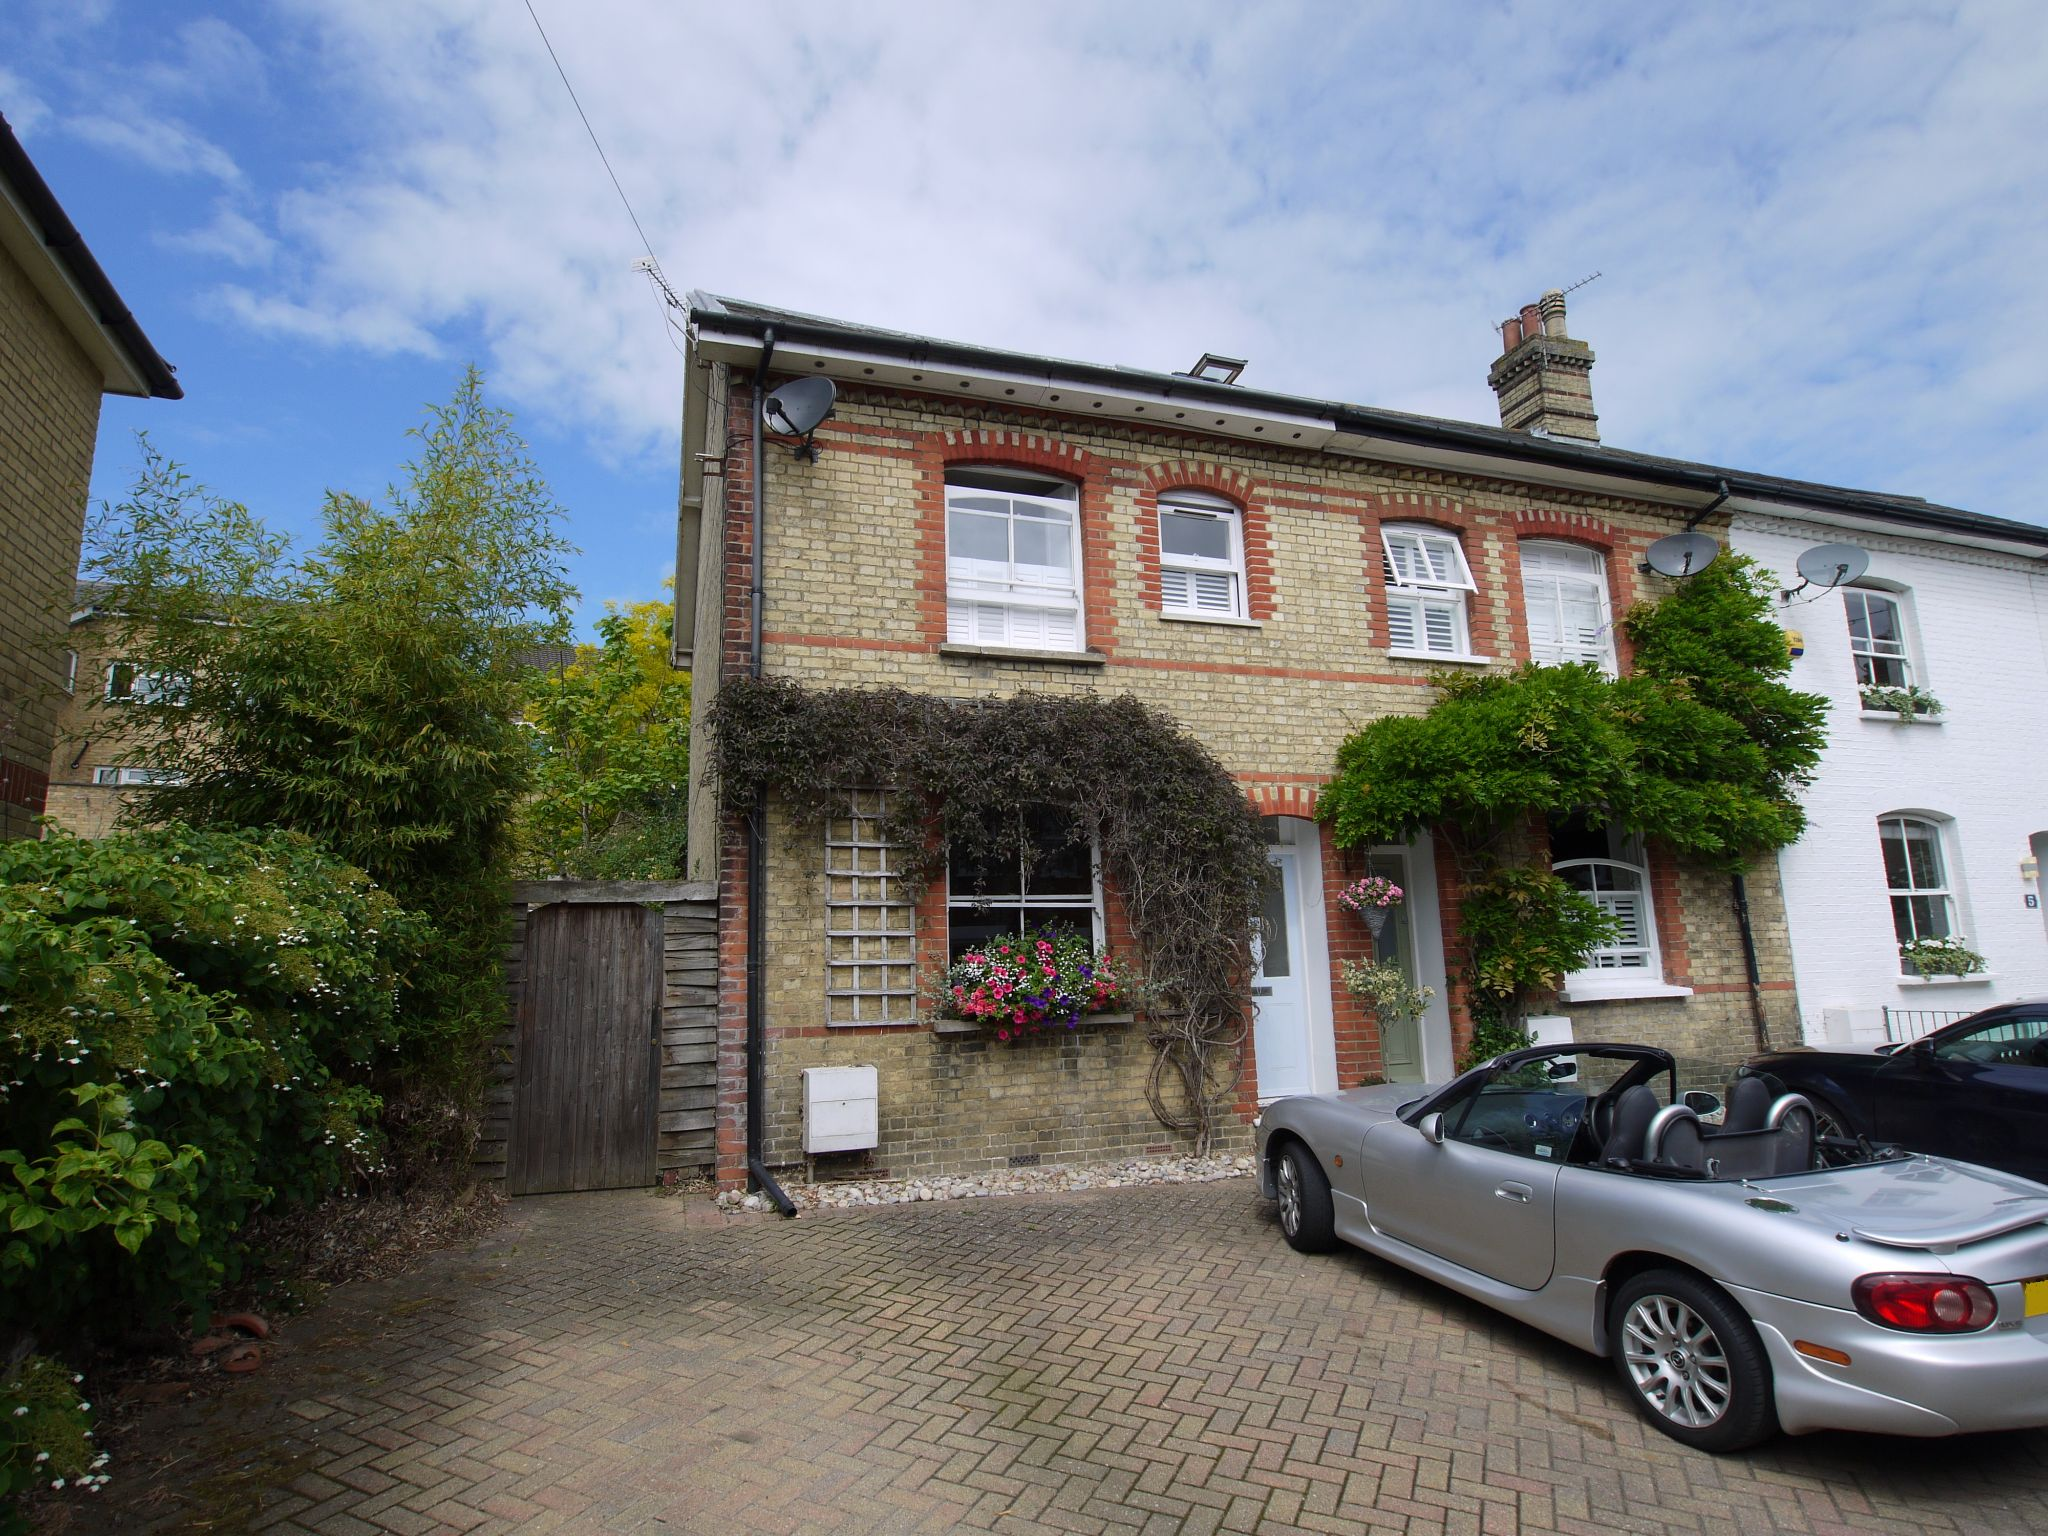 3 bedroom end terraced house For Sale in Sevenoaks - Photograph 1